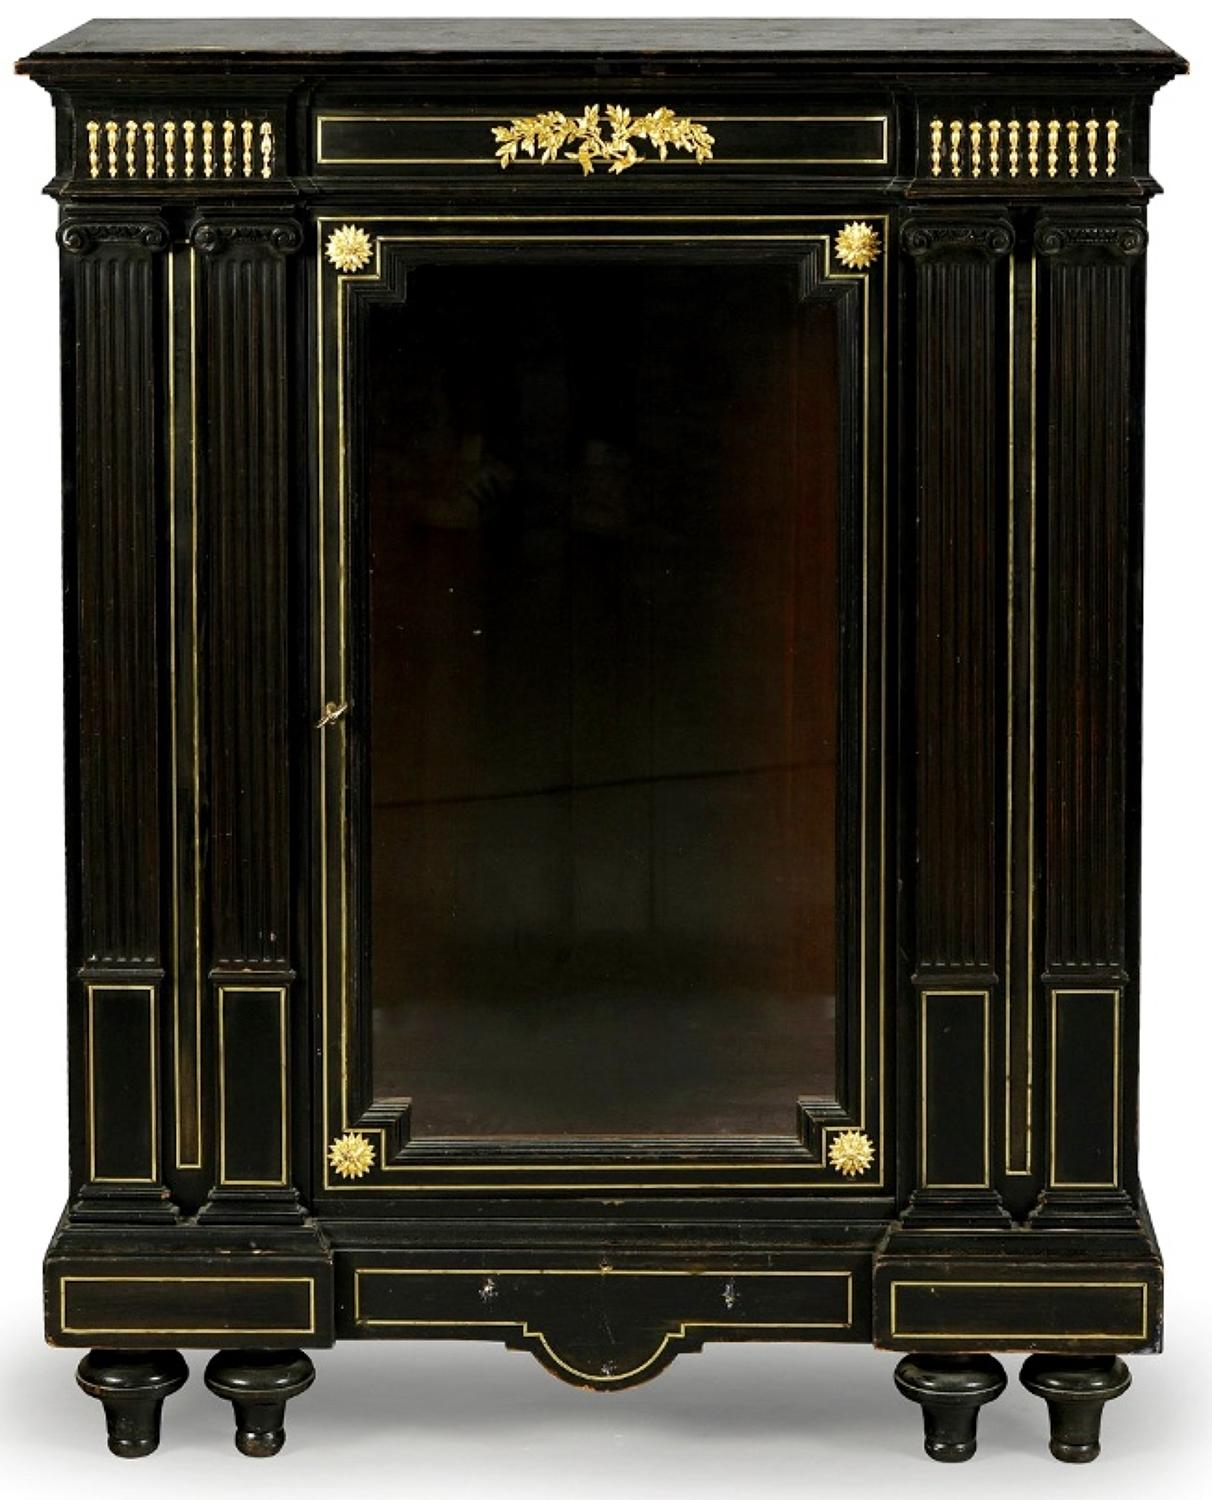 A BRASS MOUNTED EBONY GLAZED CABINET